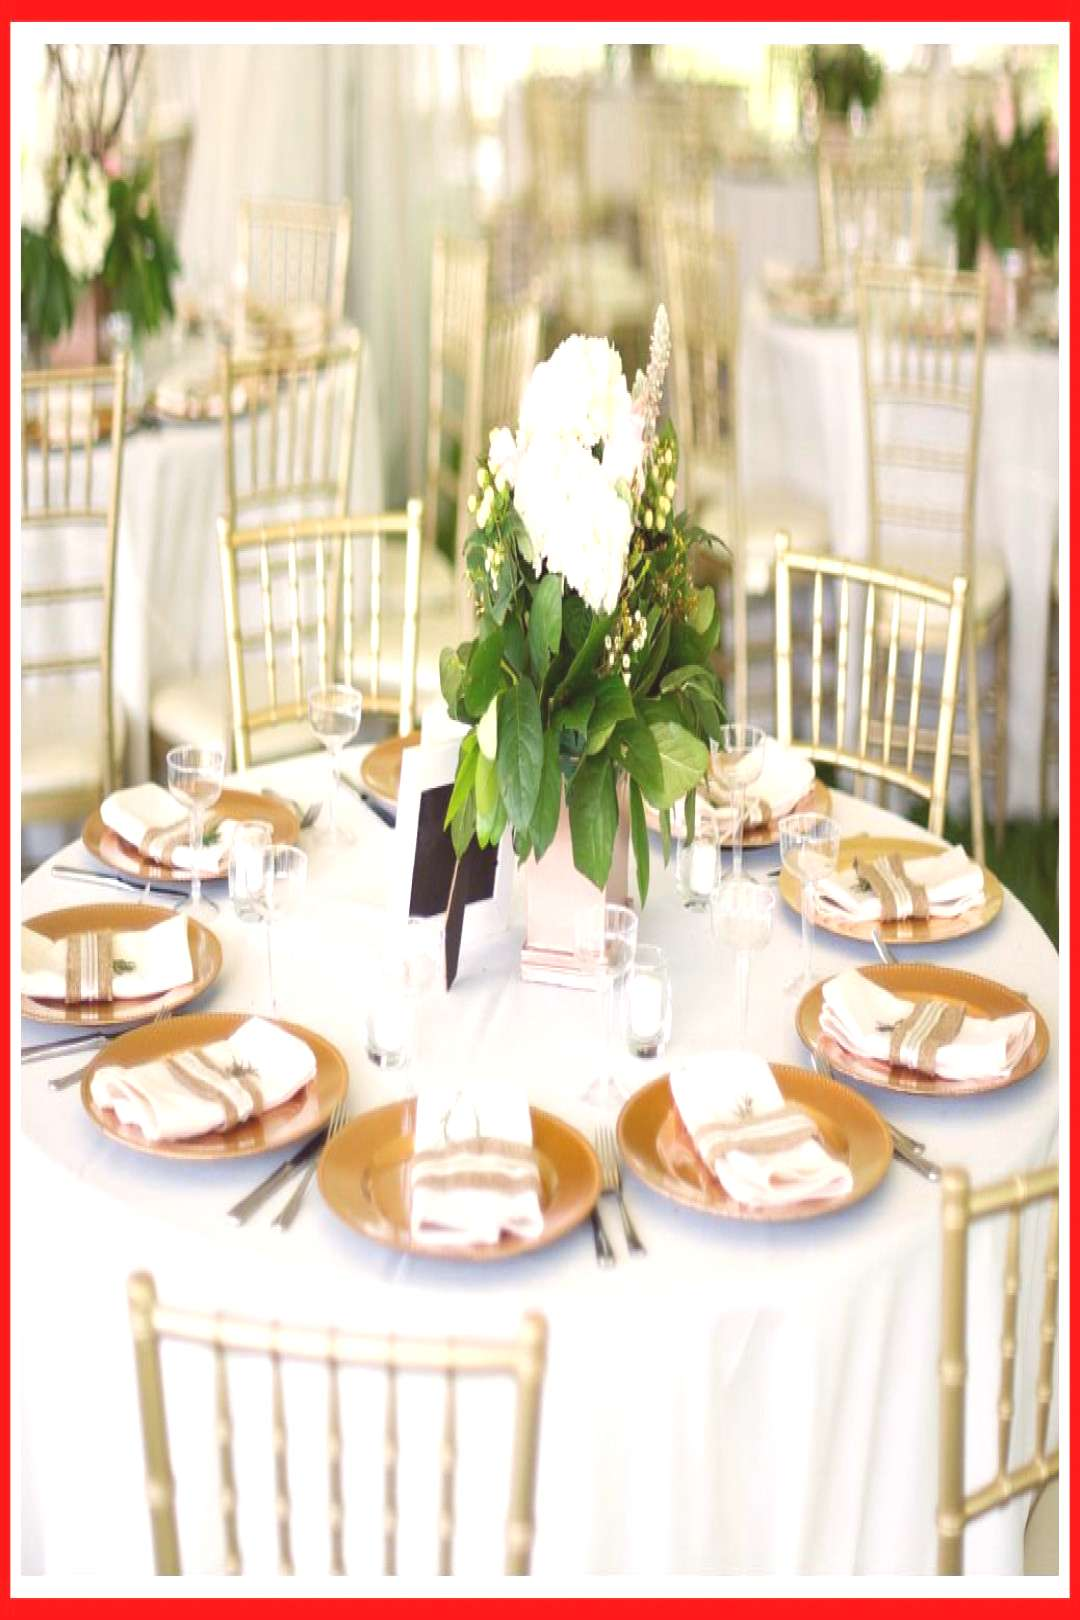 93 reference of elegant chair cover designs pittsburgh elegant chair cover designs pittsburgh-#eleg